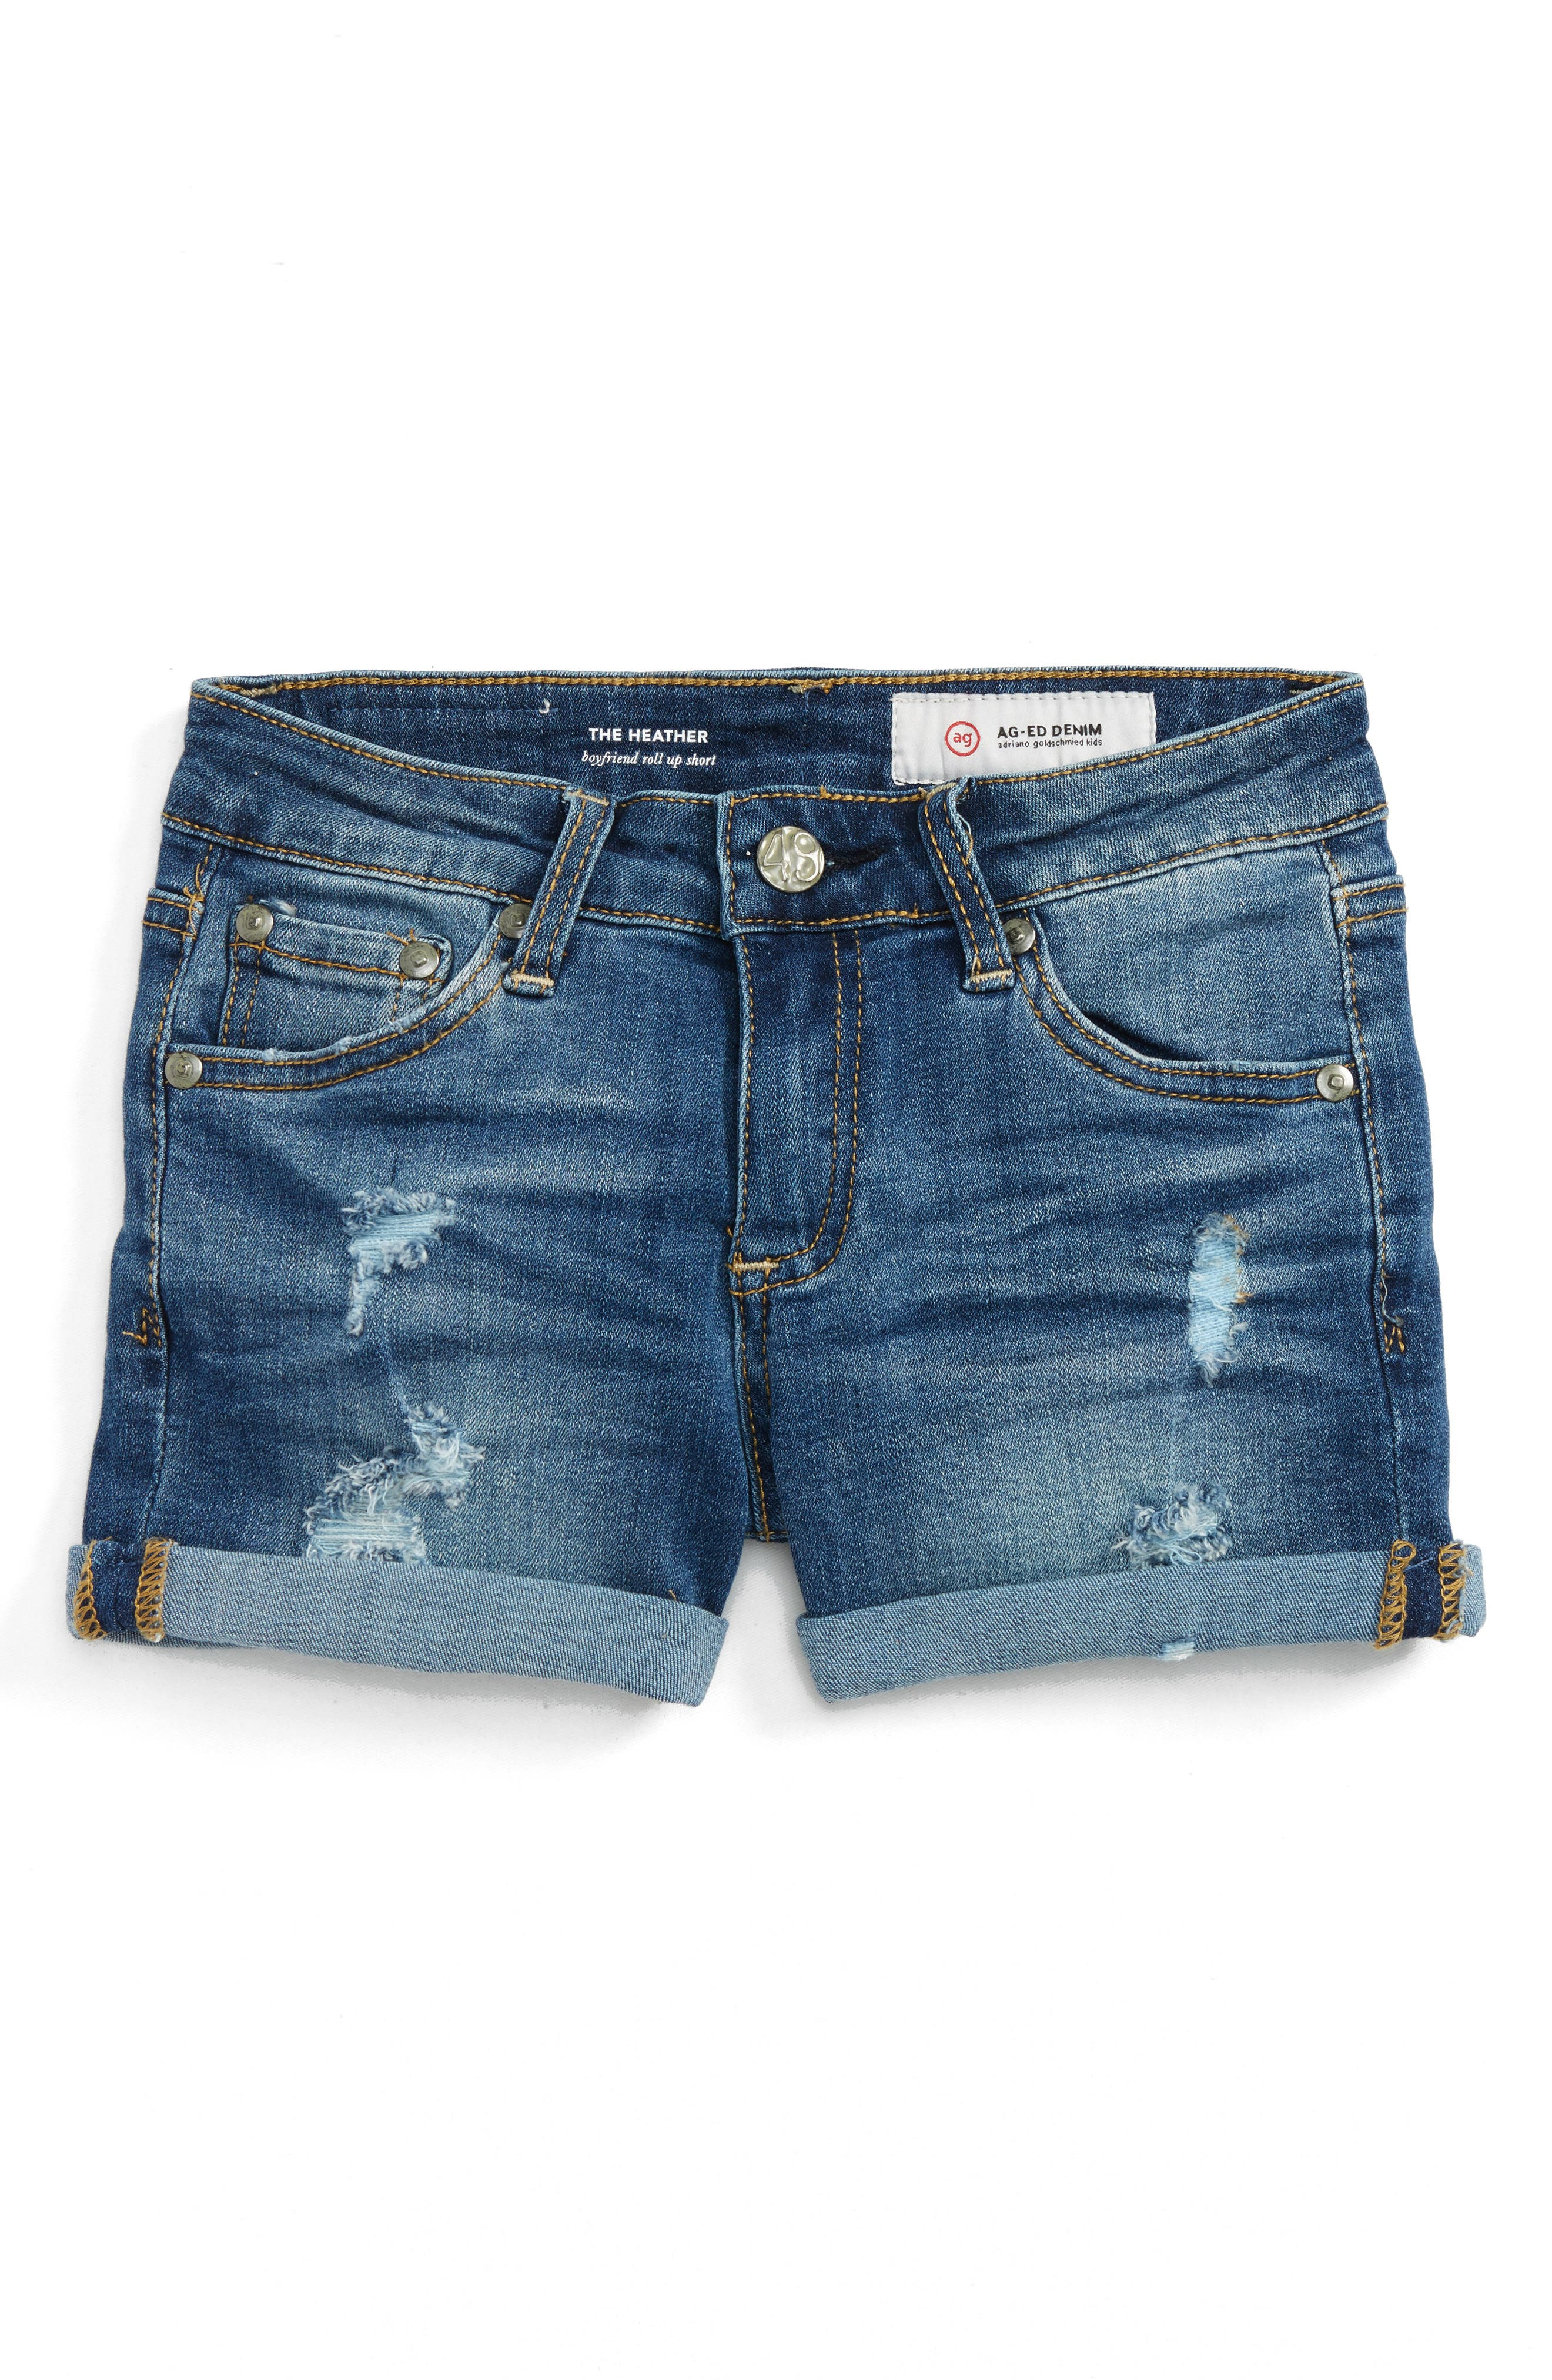 AG ADRIANO GOLDSCHMIED KIDS The Heather Roll Cuff Shorts